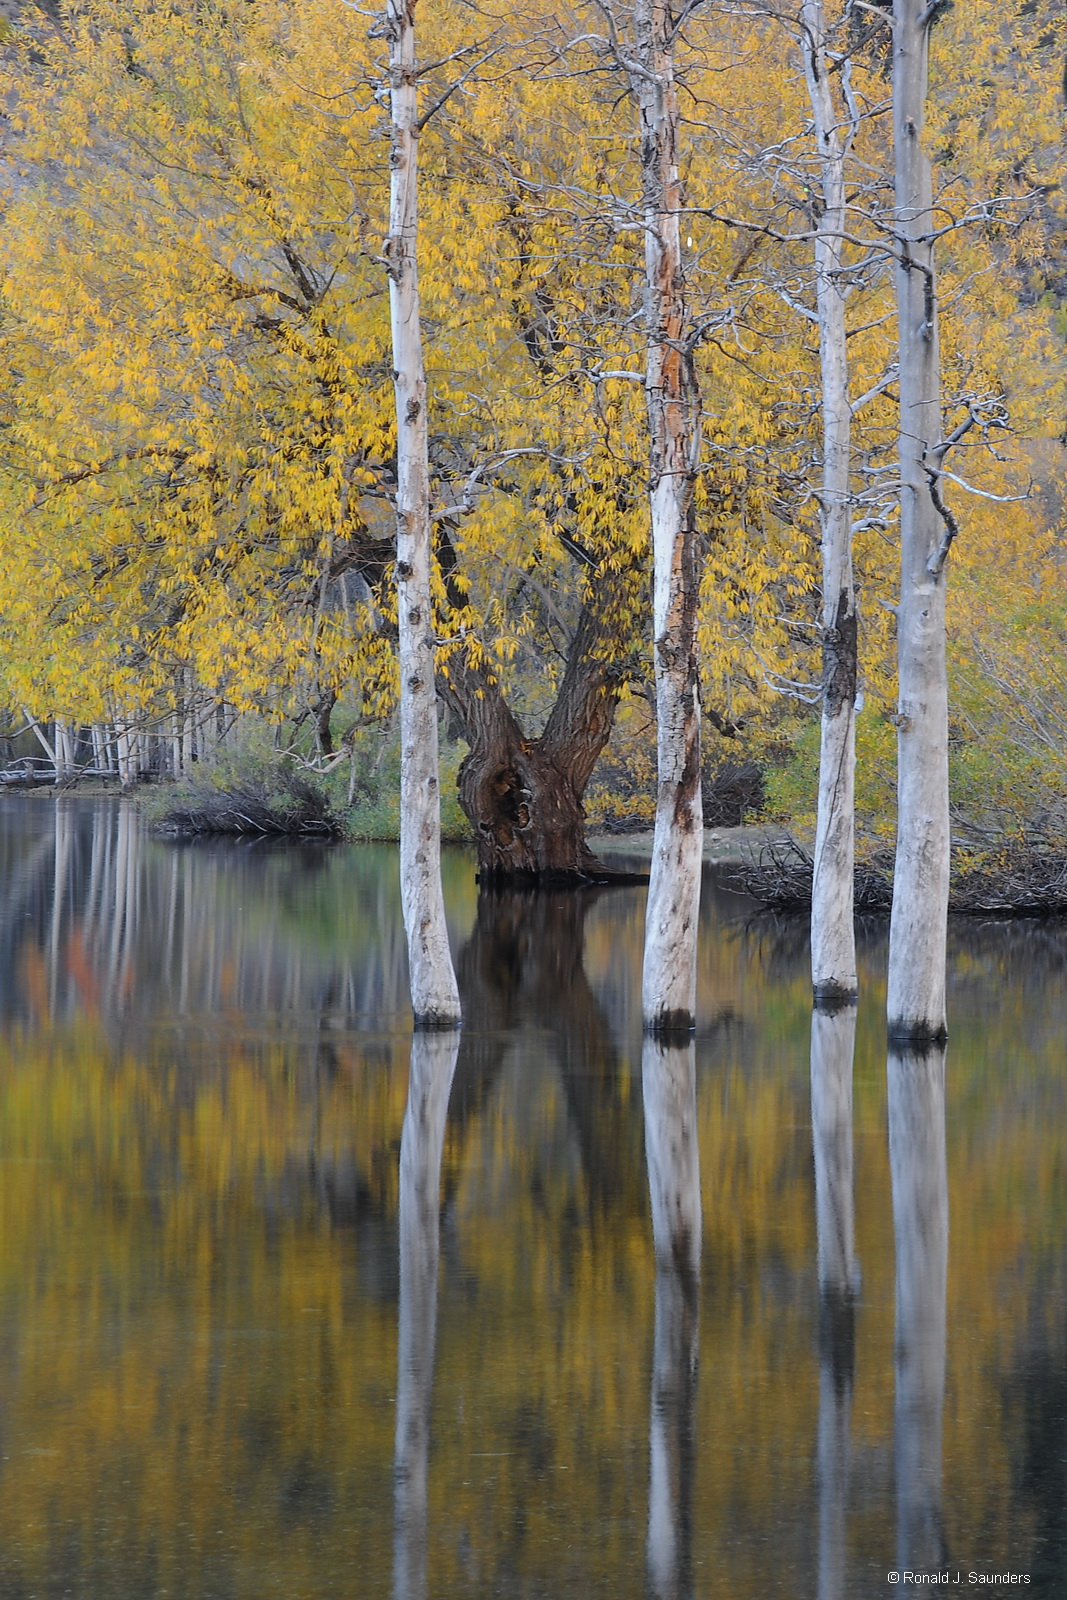 This vertical image also has a cousin in a horizontal format. Taken on a nice crisp October morning in 2011.